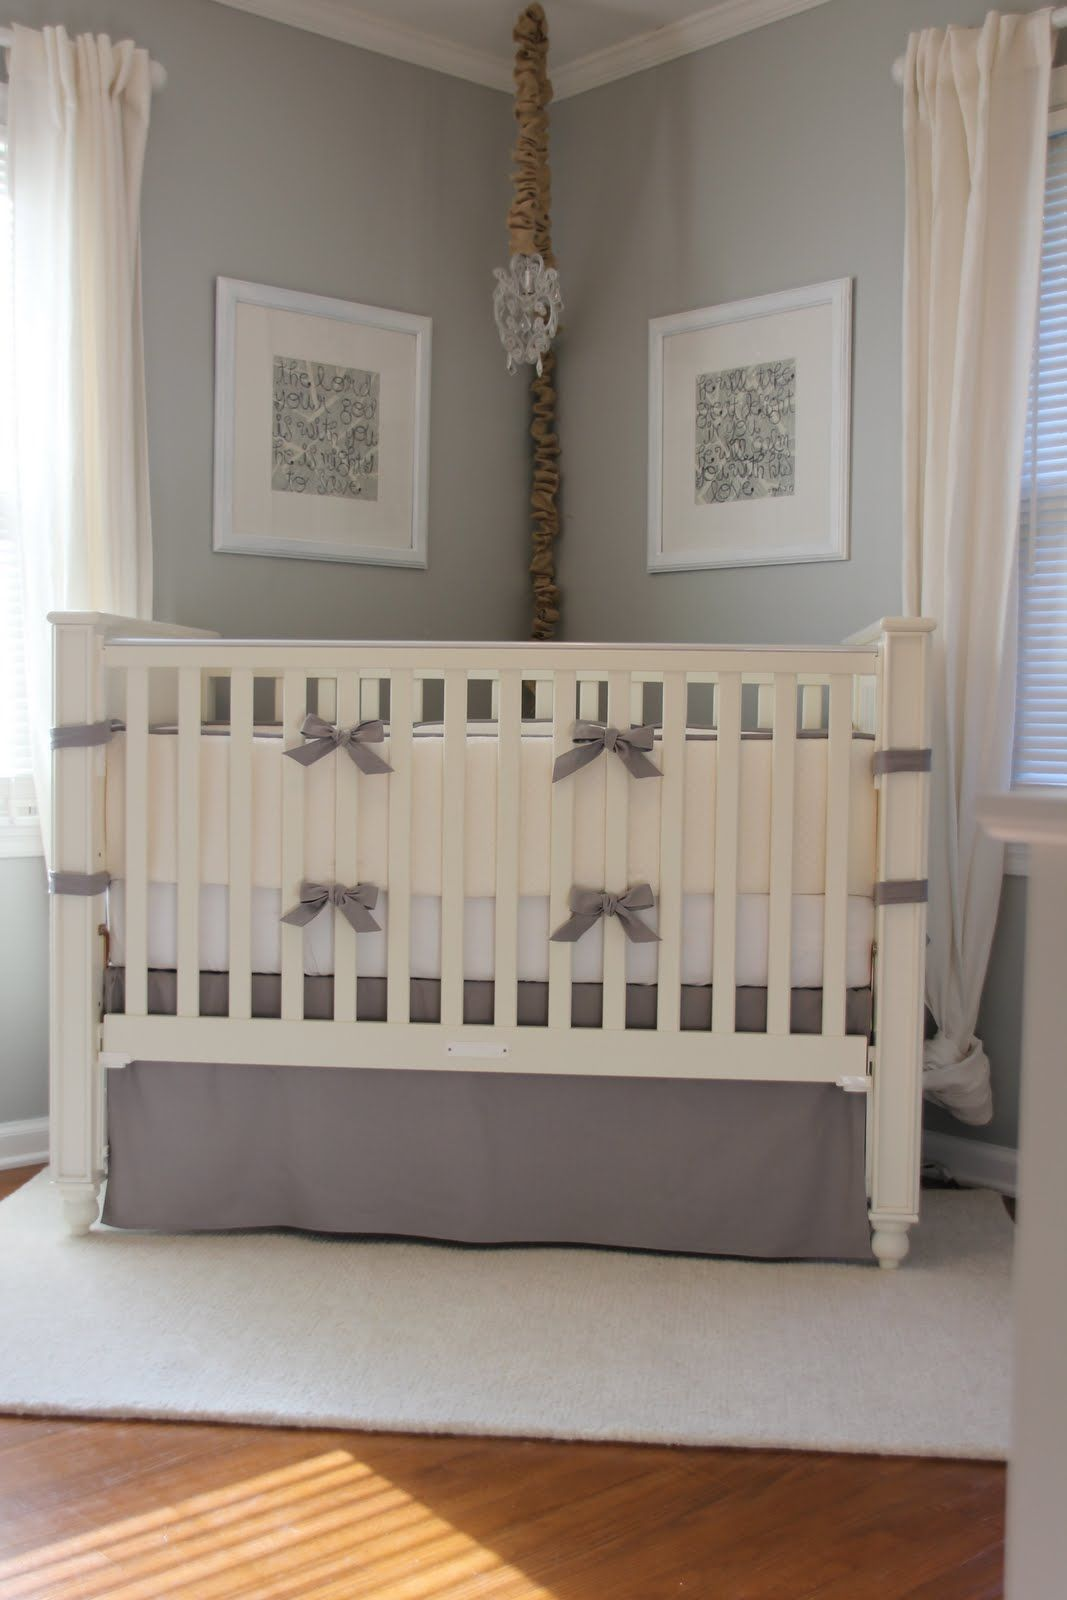 Bedroom painted benjamin moore stonington gray the wall color is